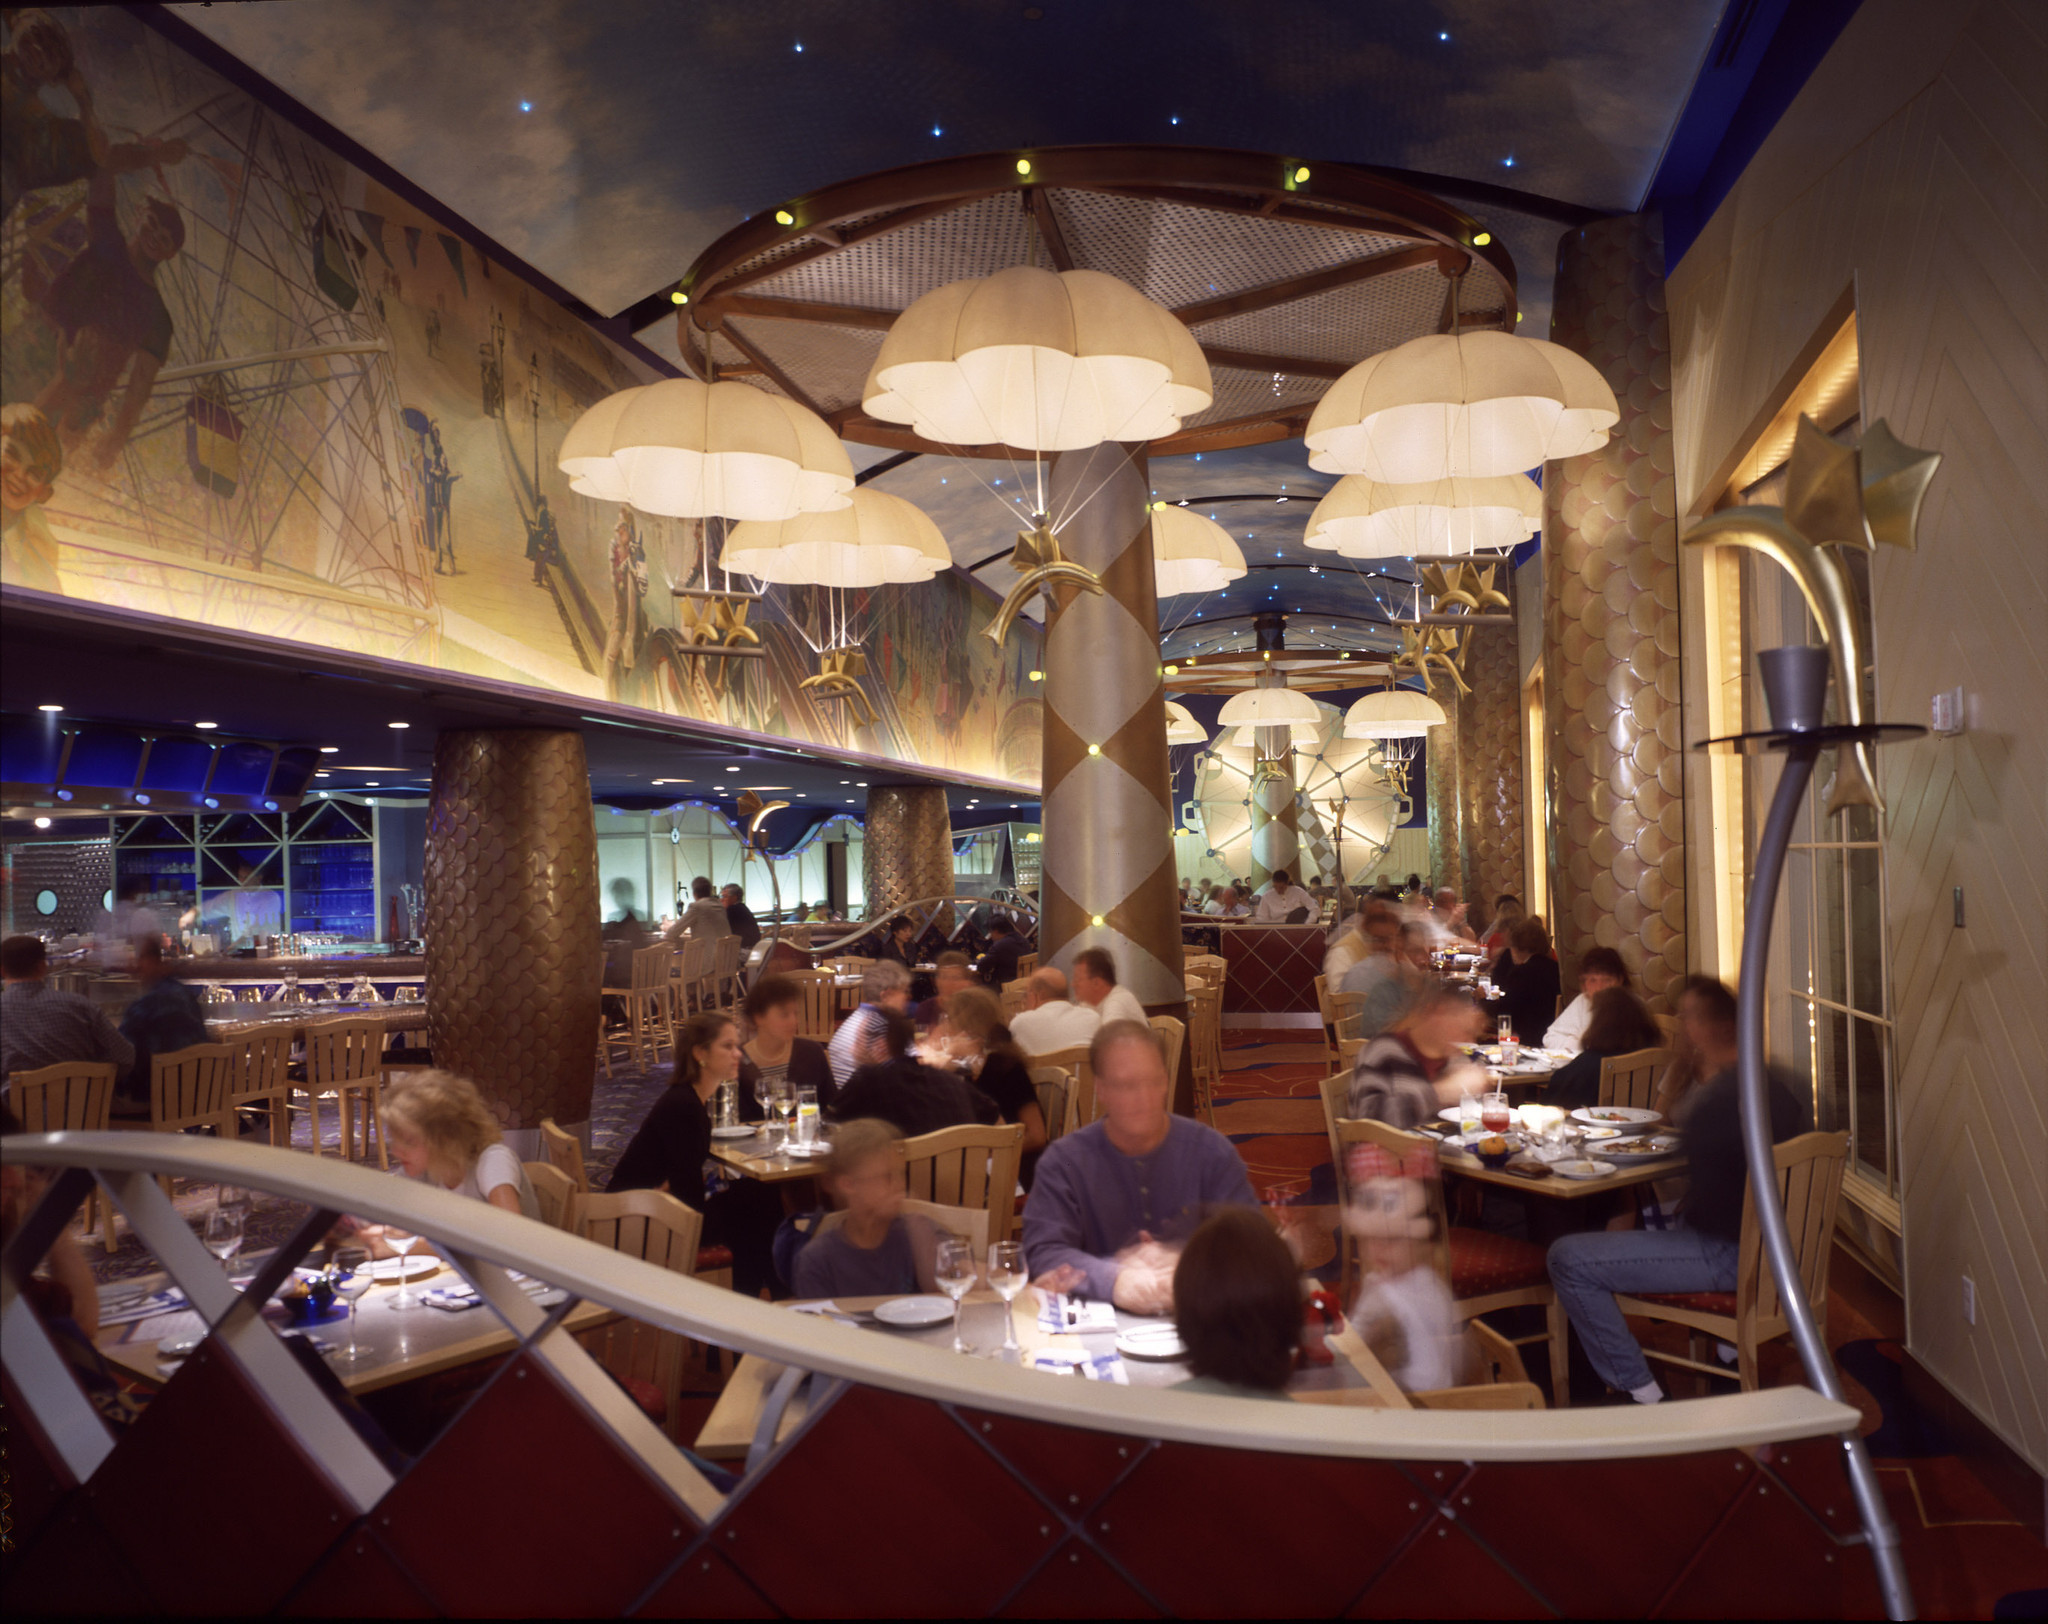 Disney world 39 s flying fish cafe to close for renovation for Flying fish cafe disney